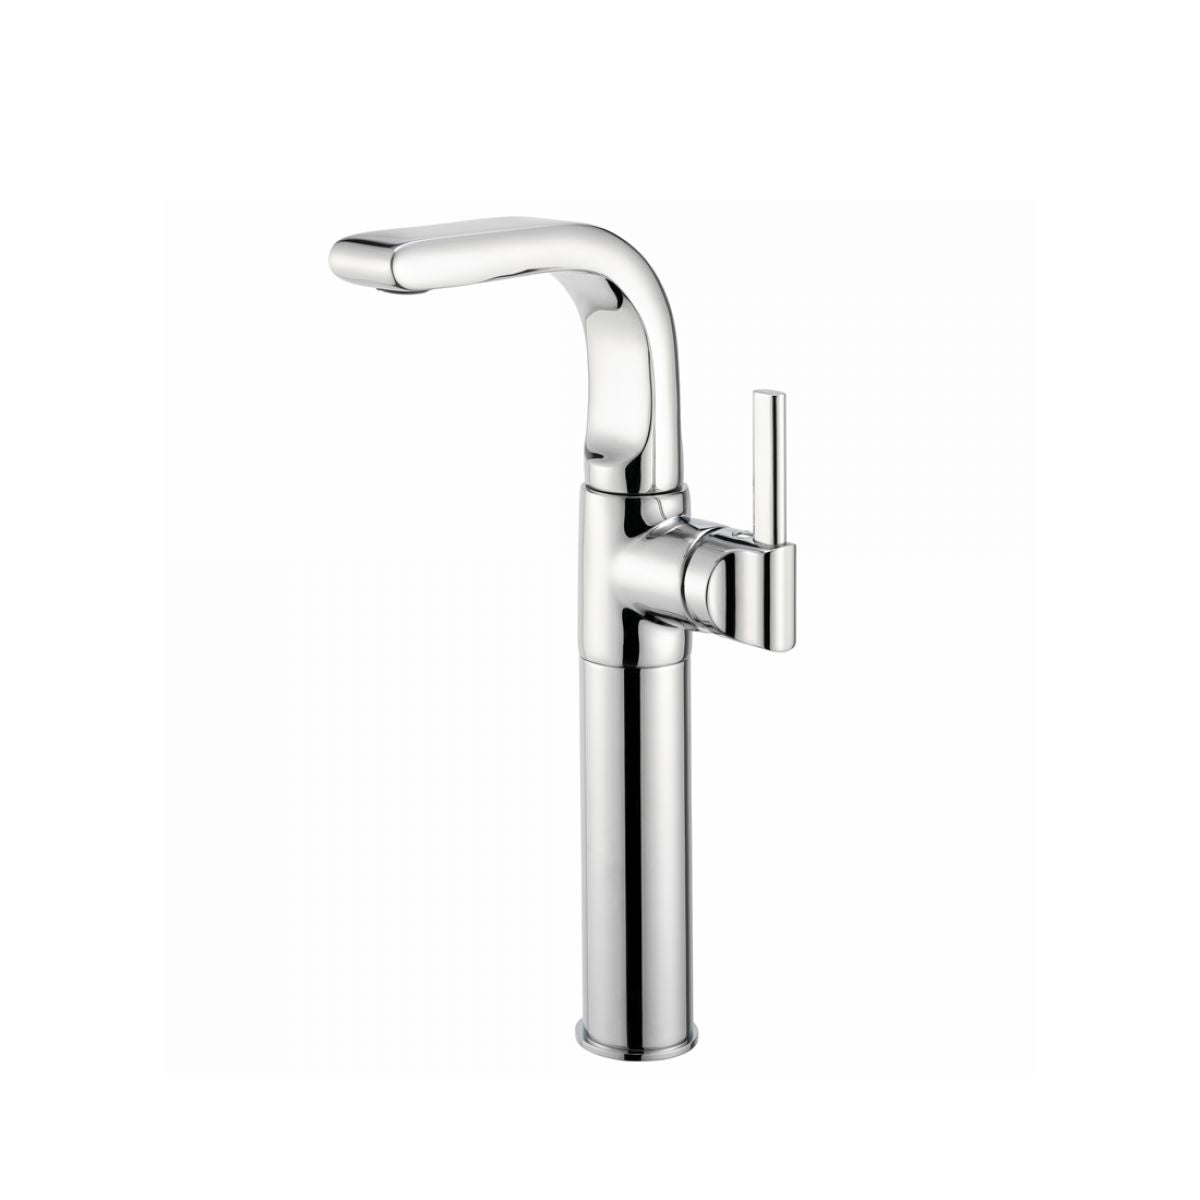 Francis Pegler Panacea Tall Monobloc Basin Mixer - blueskybathrooms